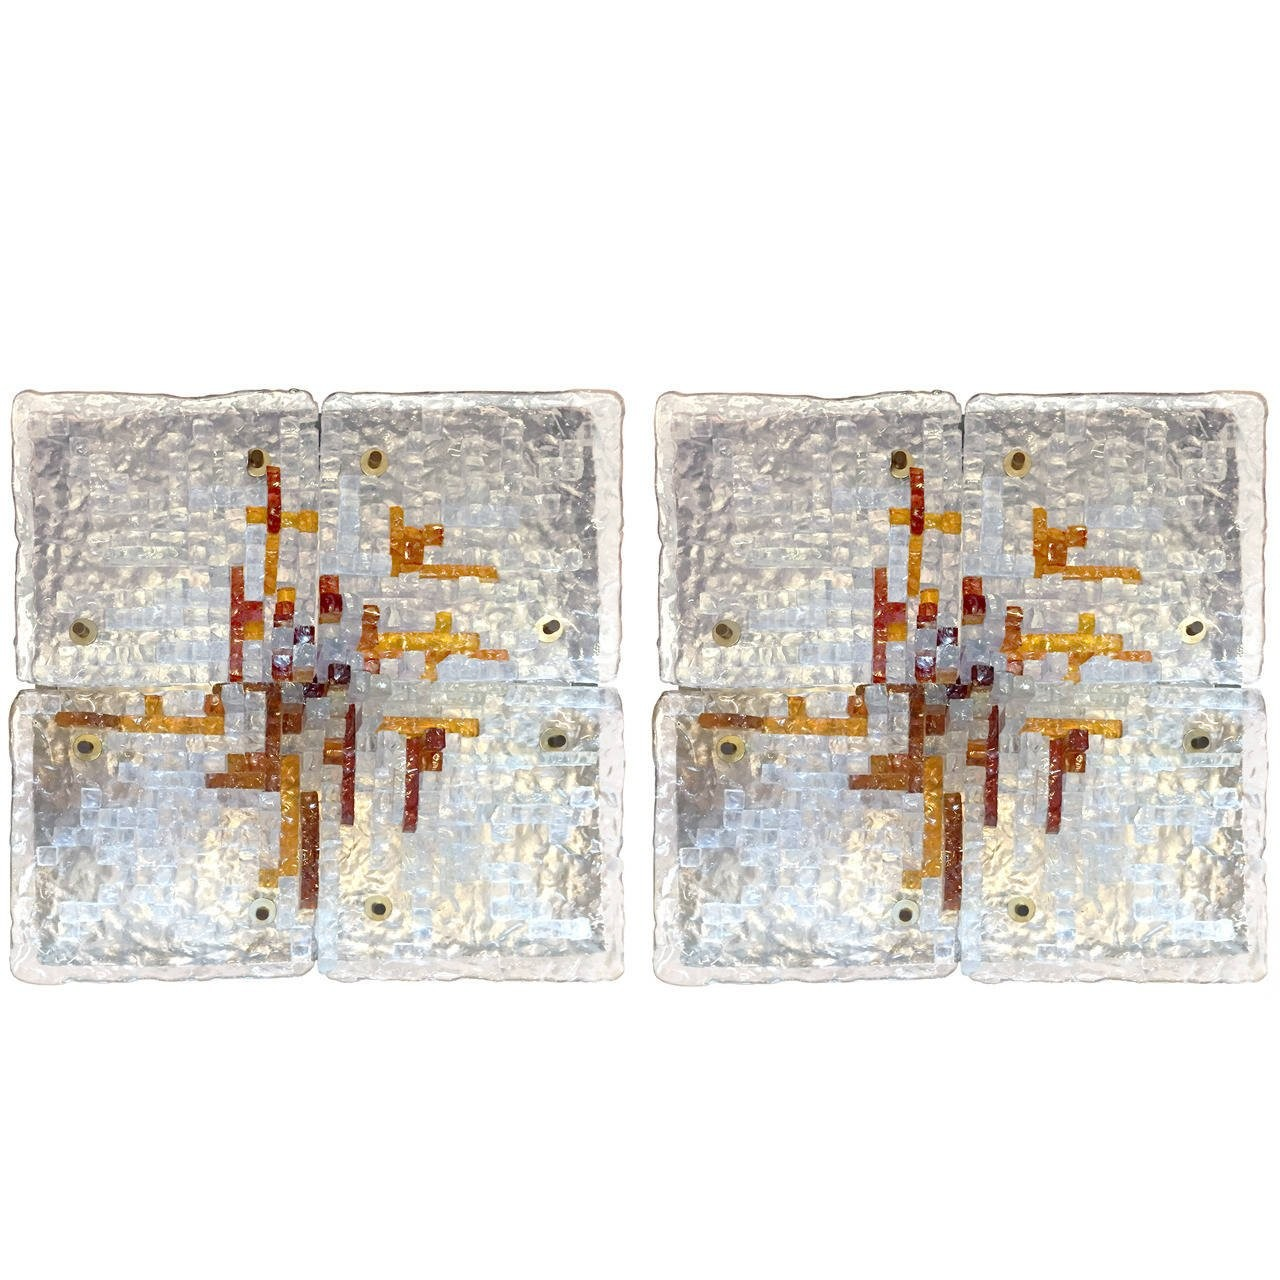 Pair of Sculptural Glass Wall Sconces in the Style of Poliarte